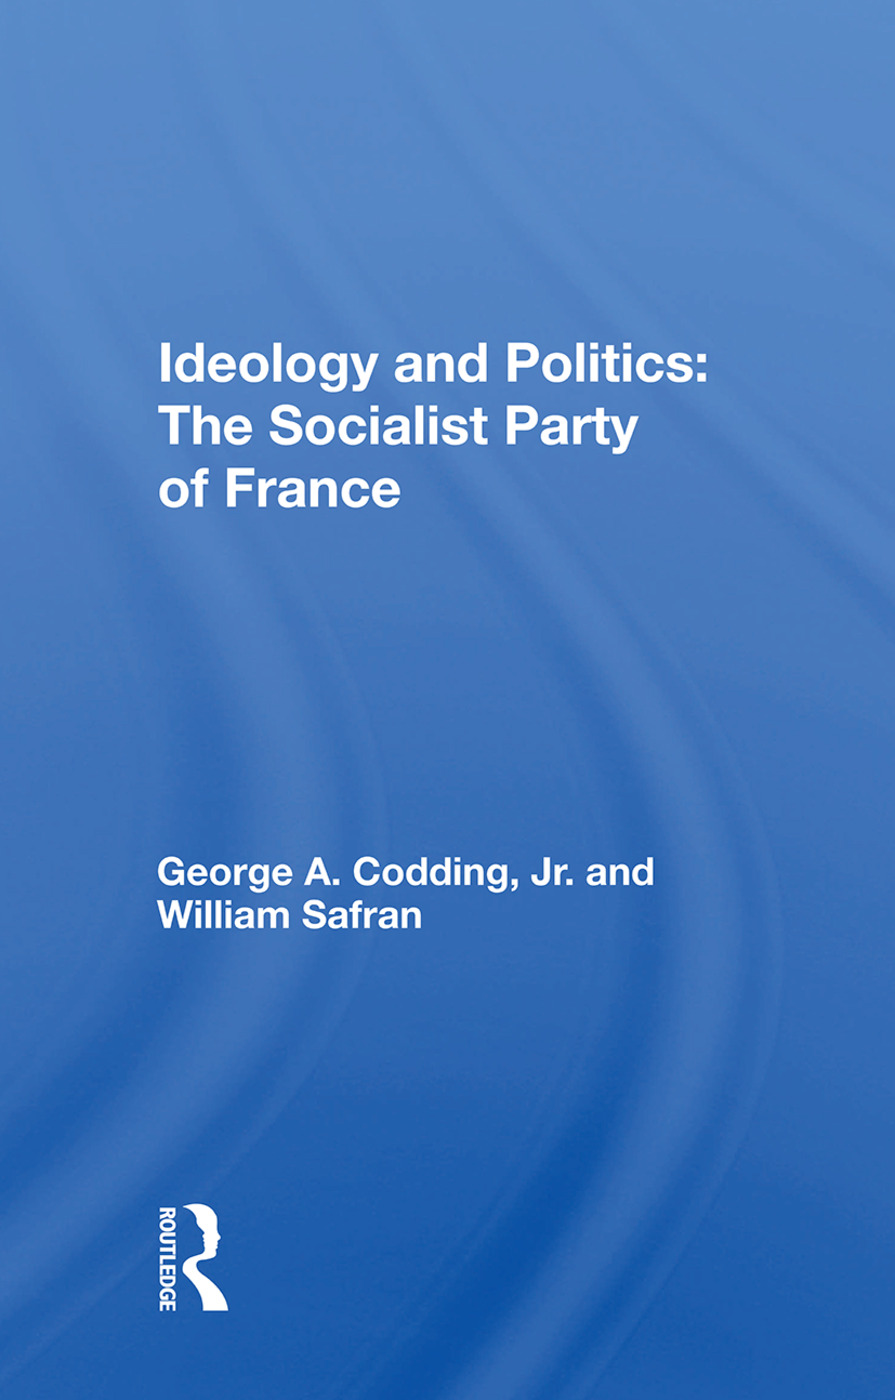 Ideology and Politics: The Socialist Party of France